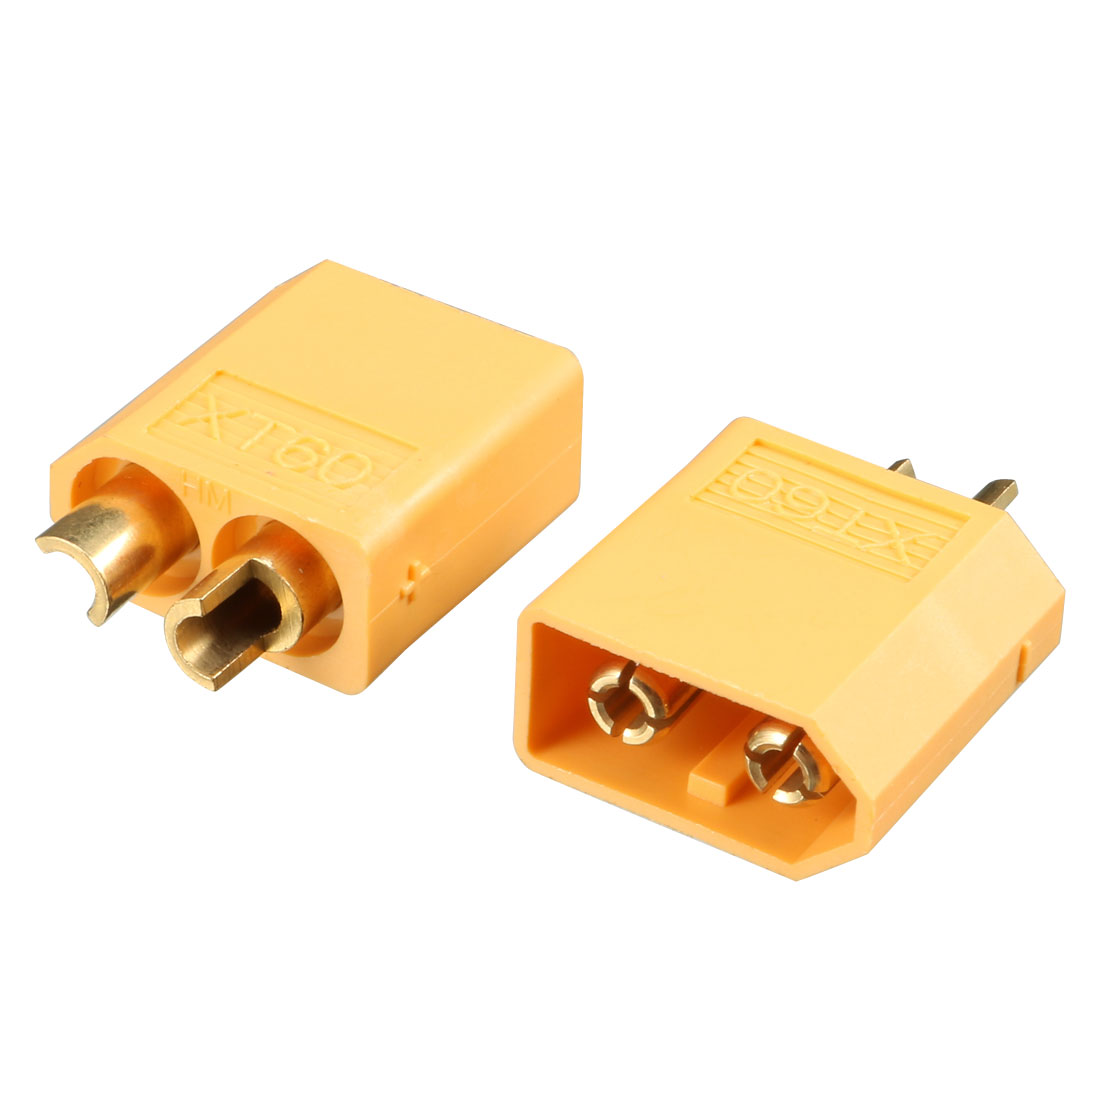 Pair Spare Parts Male Female XT60 XT-60 Connector for RC Battery